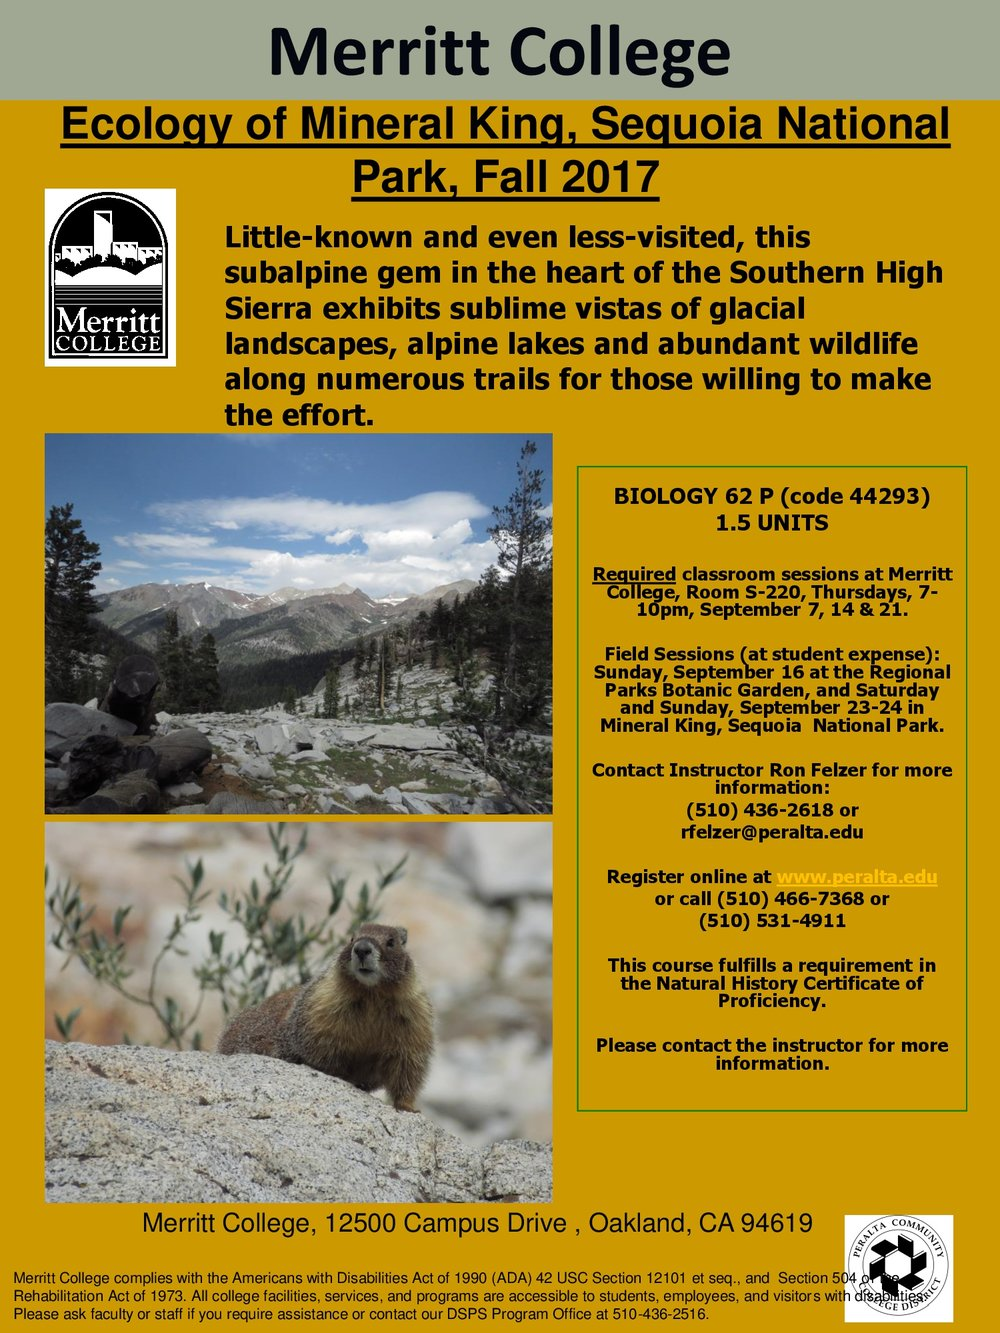 Ecology of Mineral King, Sequoia National Park  -